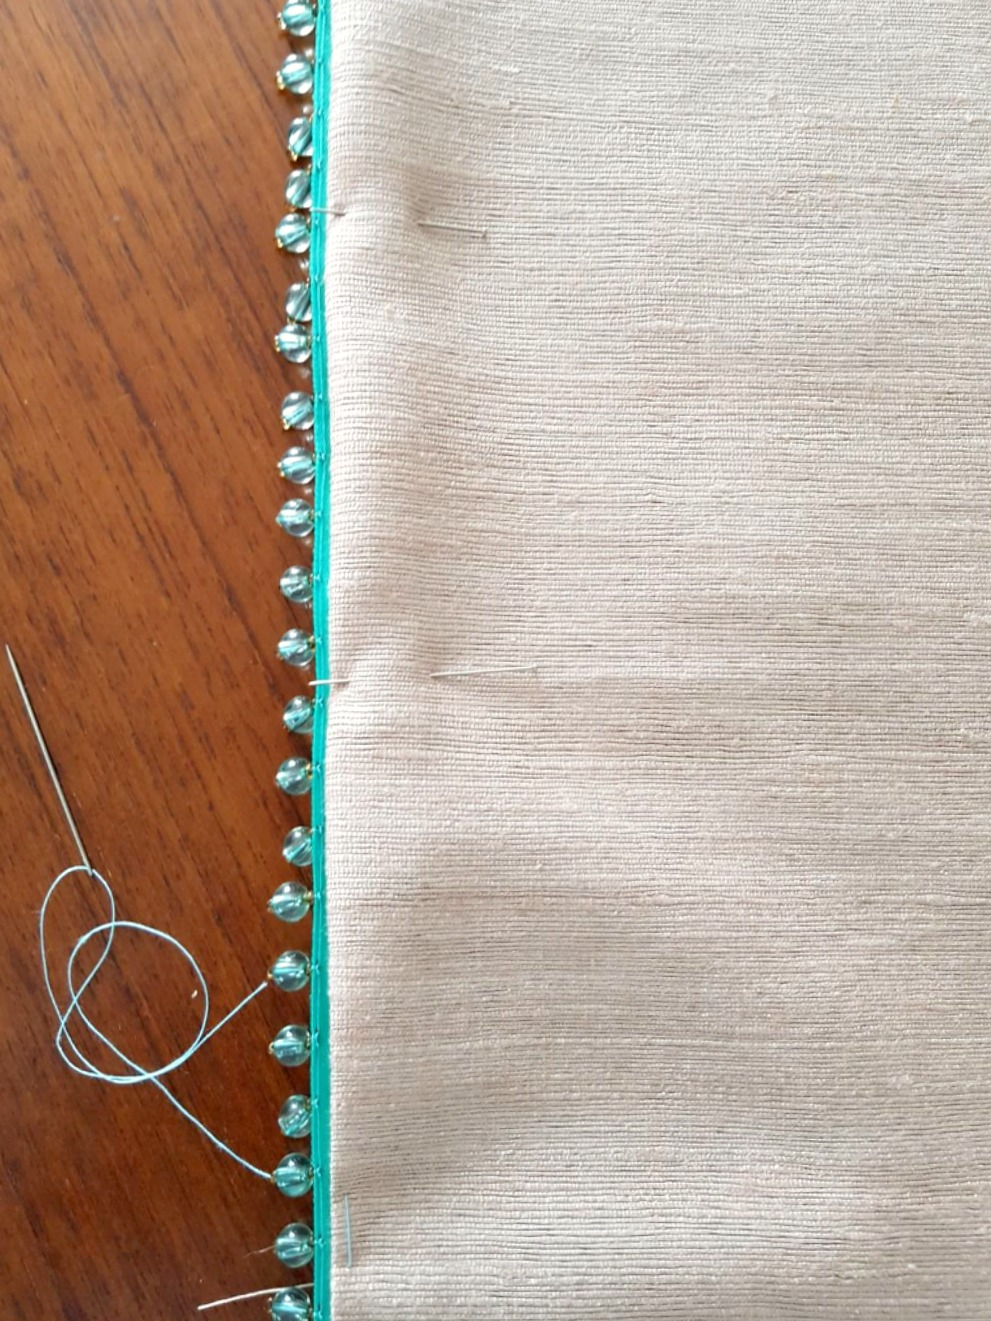 DIY Table Runner with Beaded Trim - Tips for Sewing on Beaded Trim